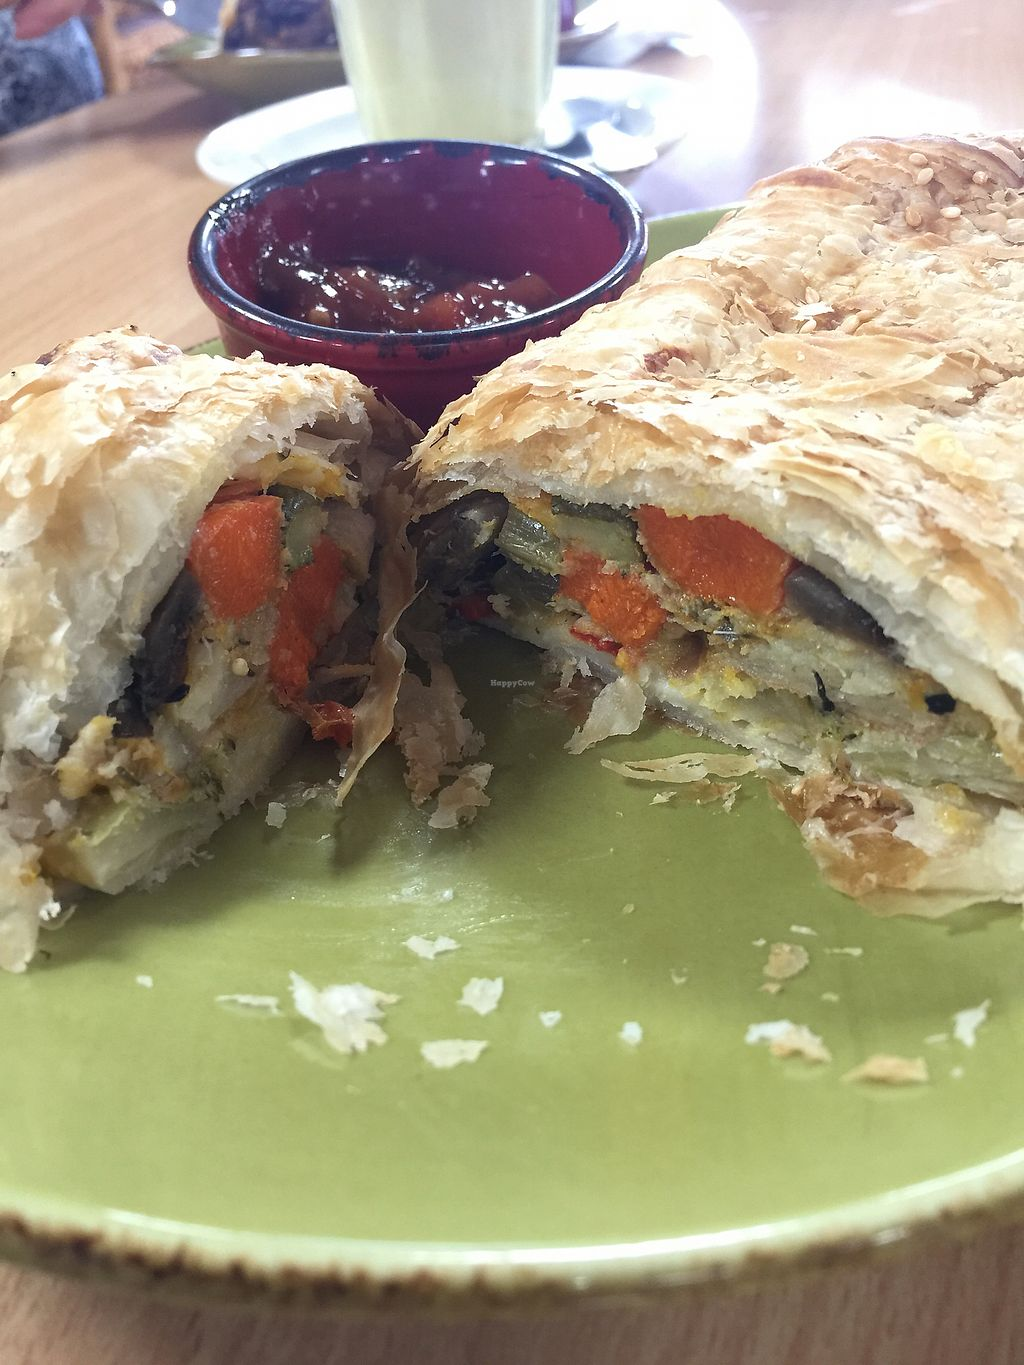 """Photo of Little Sheepish  by <a href=""""/members/profile/Mezz7"""">Mezz7</a> <br/>Vegan pastie and chutney  <br/> March 25, 2018  - <a href='/contact/abuse/image/65300/375746'>Report</a>"""